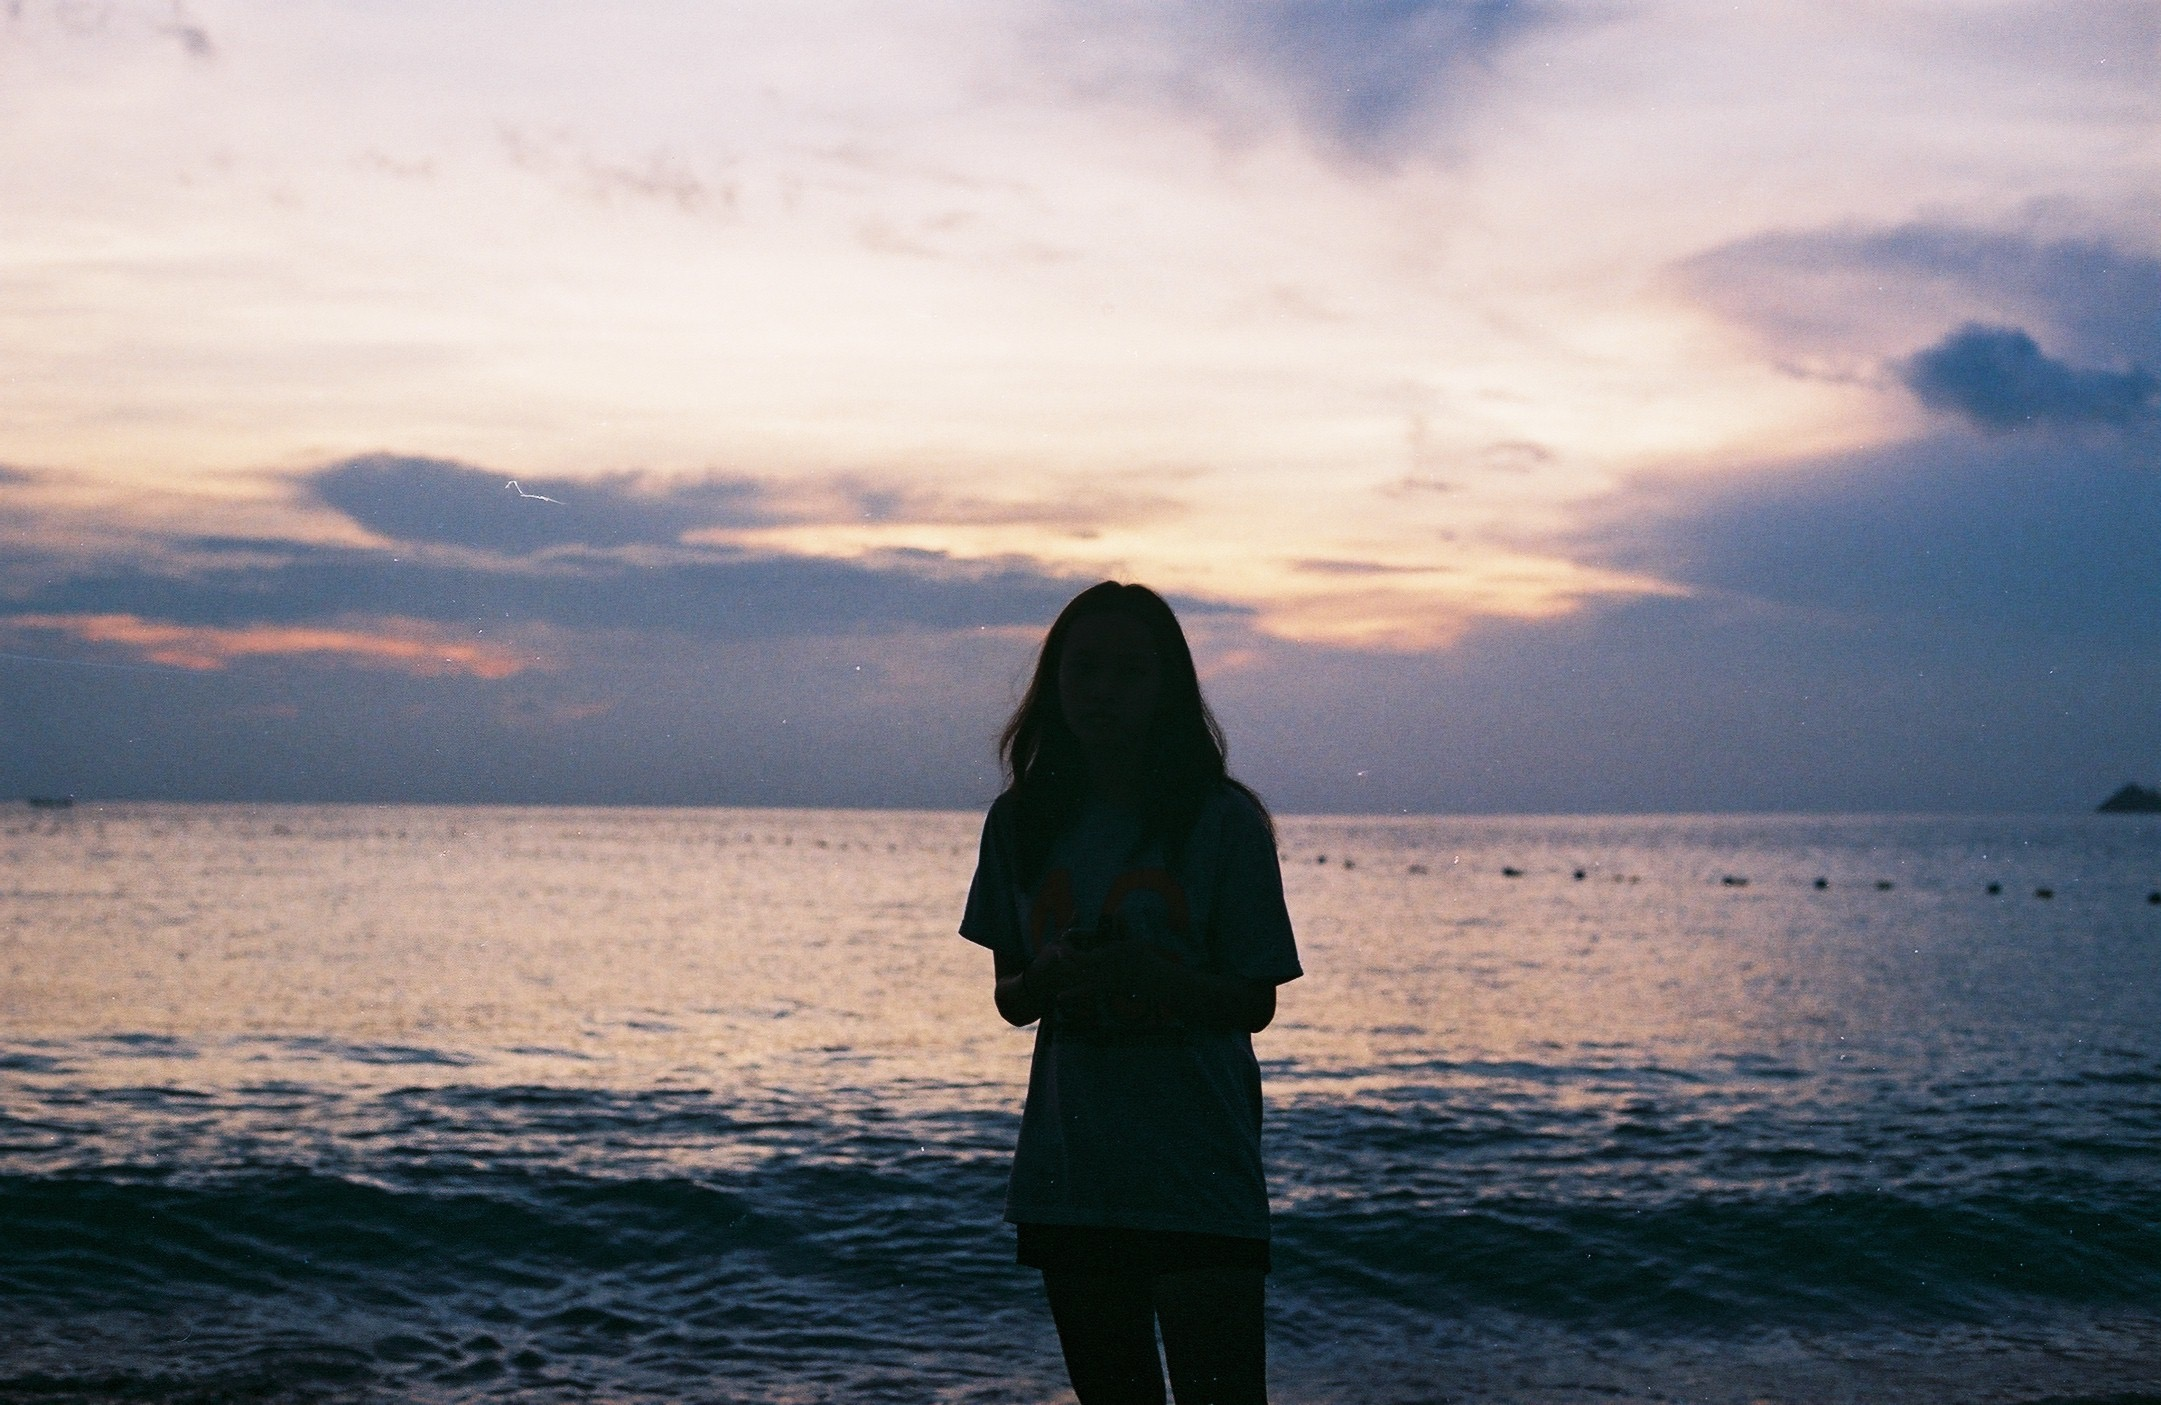 Cosmic Girls Wallpaper Silhouette Of Woman Standing Near Large Body Of Water